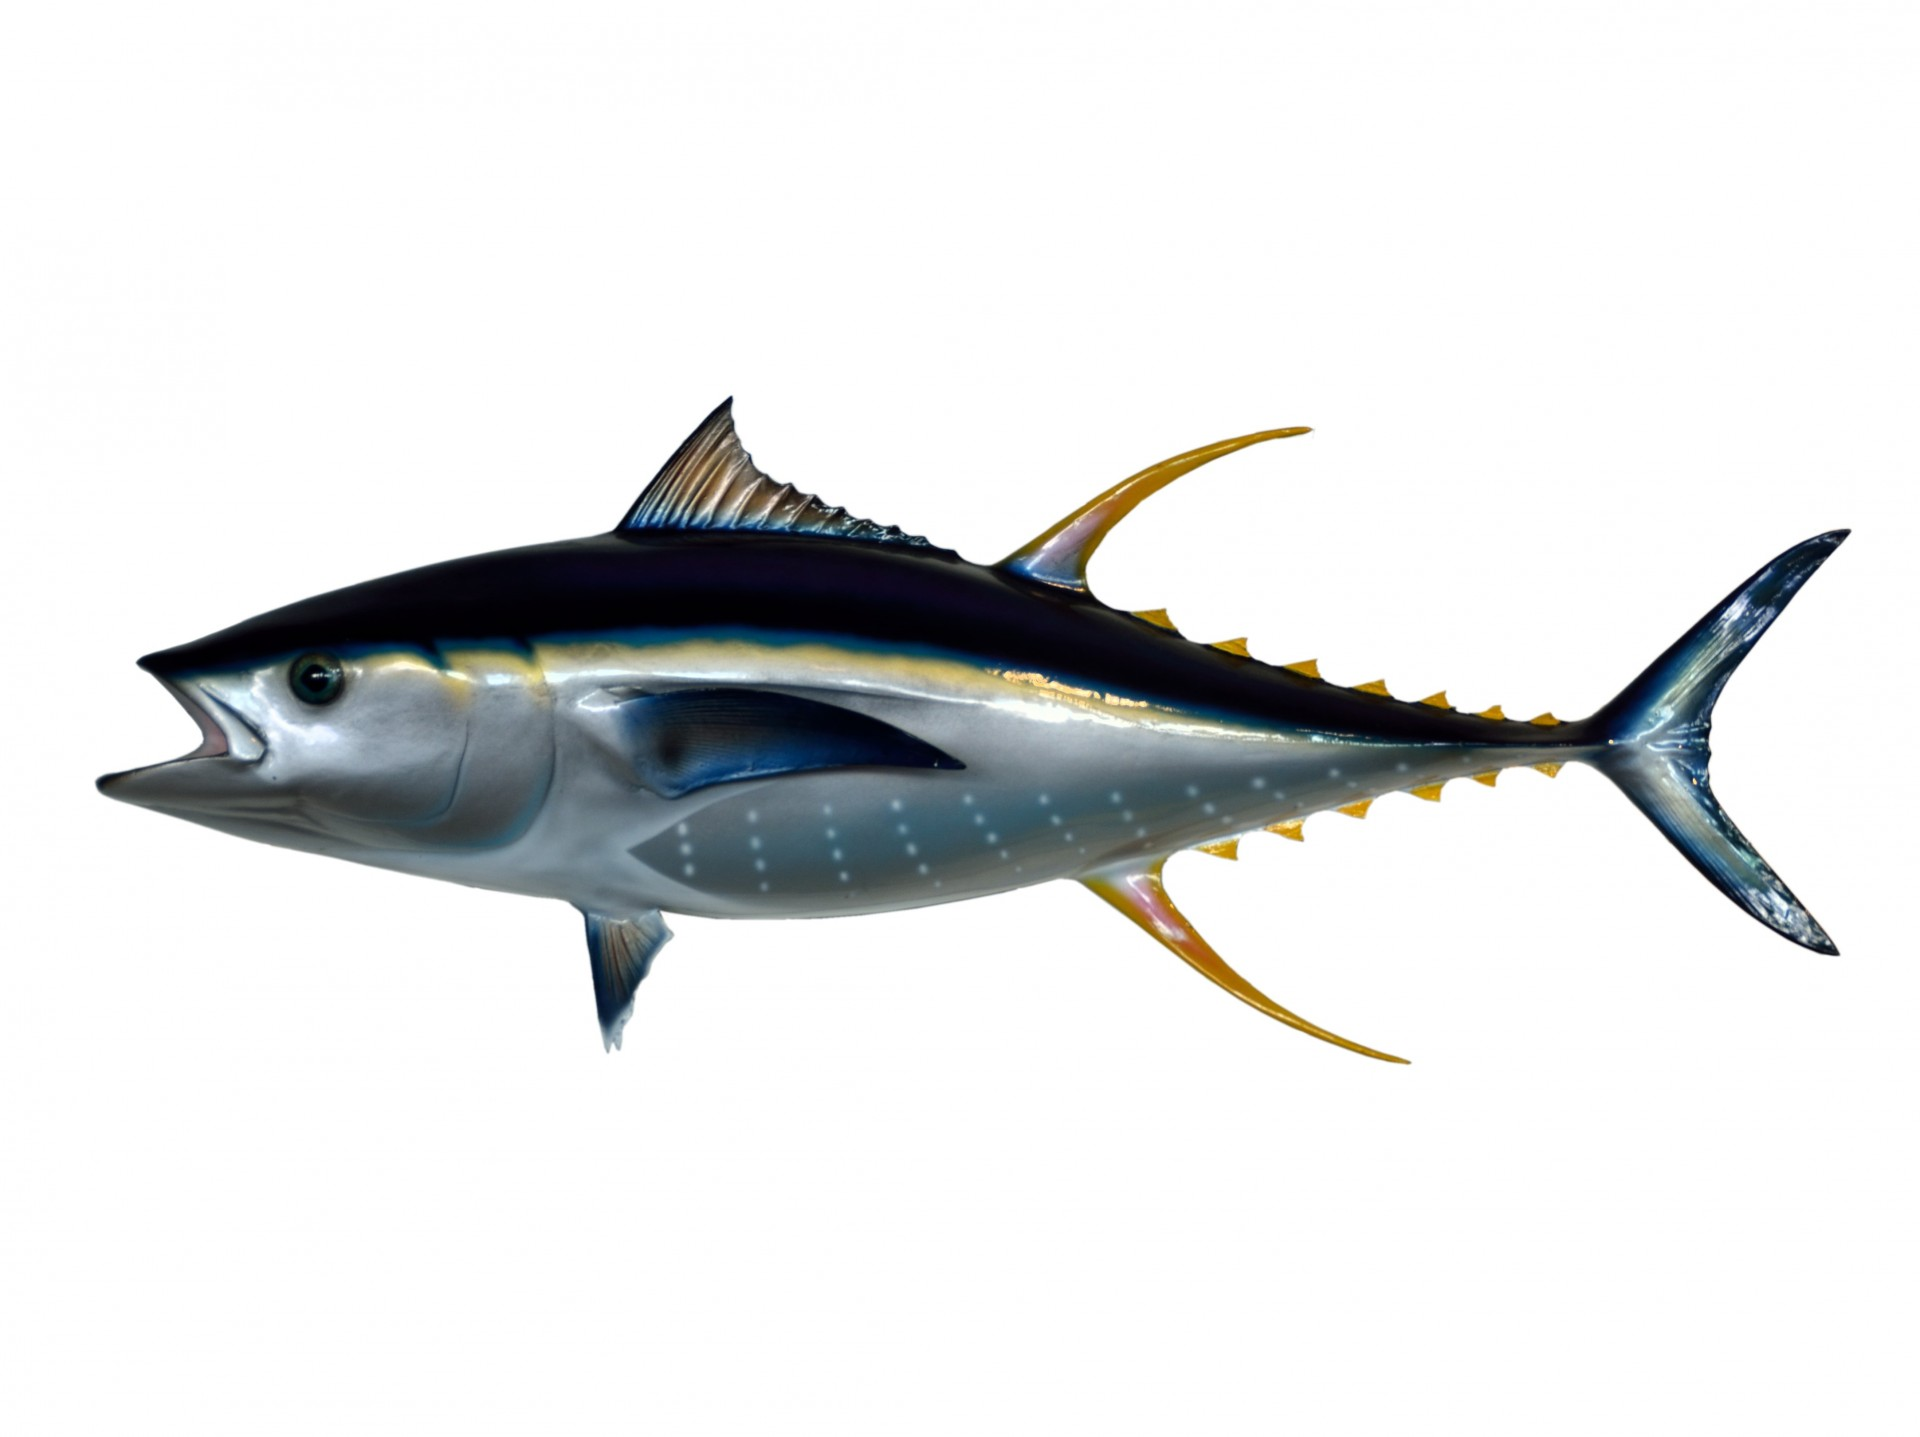 Yellowfin Tuna Underwater ...-Yellowfin Tuna Underwater ...-12